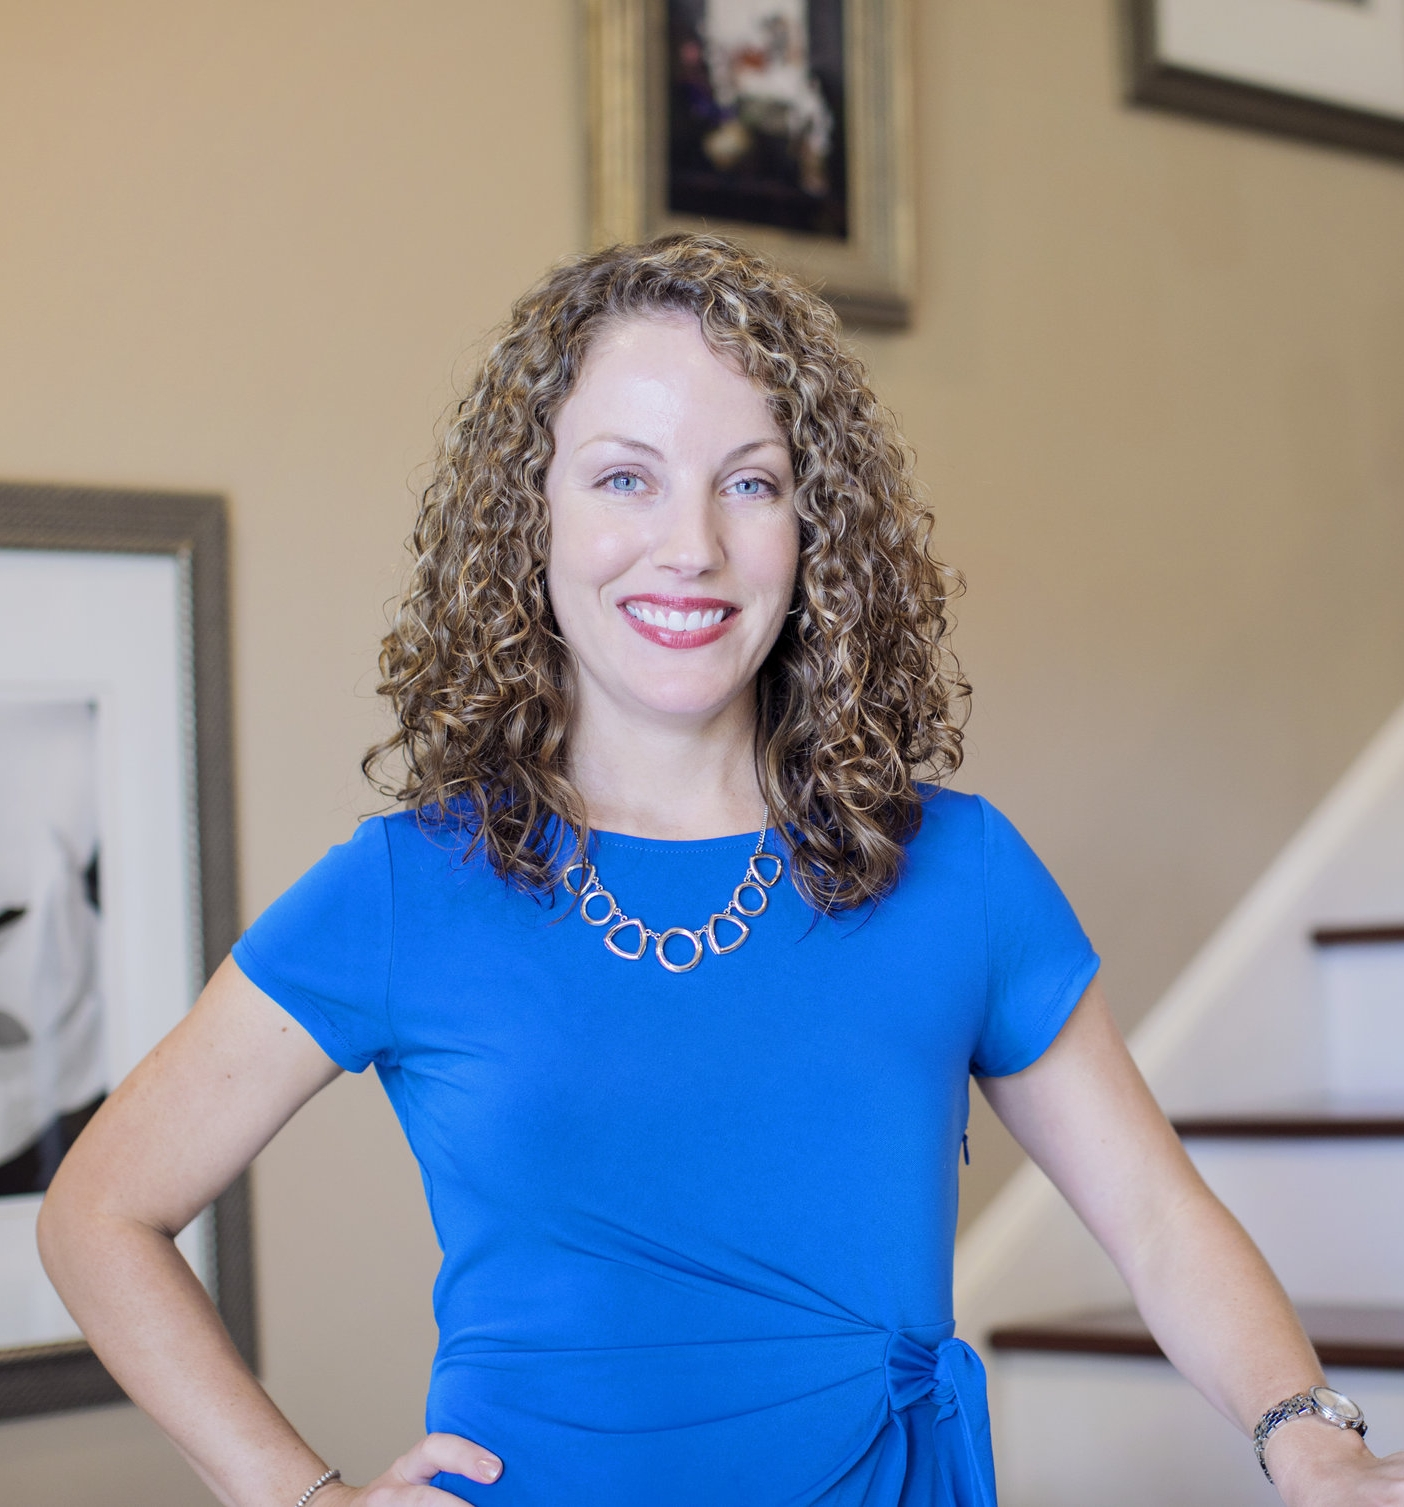 Katy Fulghum - A native of Vancleave, Katy received degrees in Psychology and Law from Auburn University and Thomas Goode Jones School of Law in Montgomery, Alabama. Katy is experienced in real estate law. She is the managing attorney of Island Winds Title Company in Pascagoula, MS. She regularly works with realtors and lenders on a variety of projects..